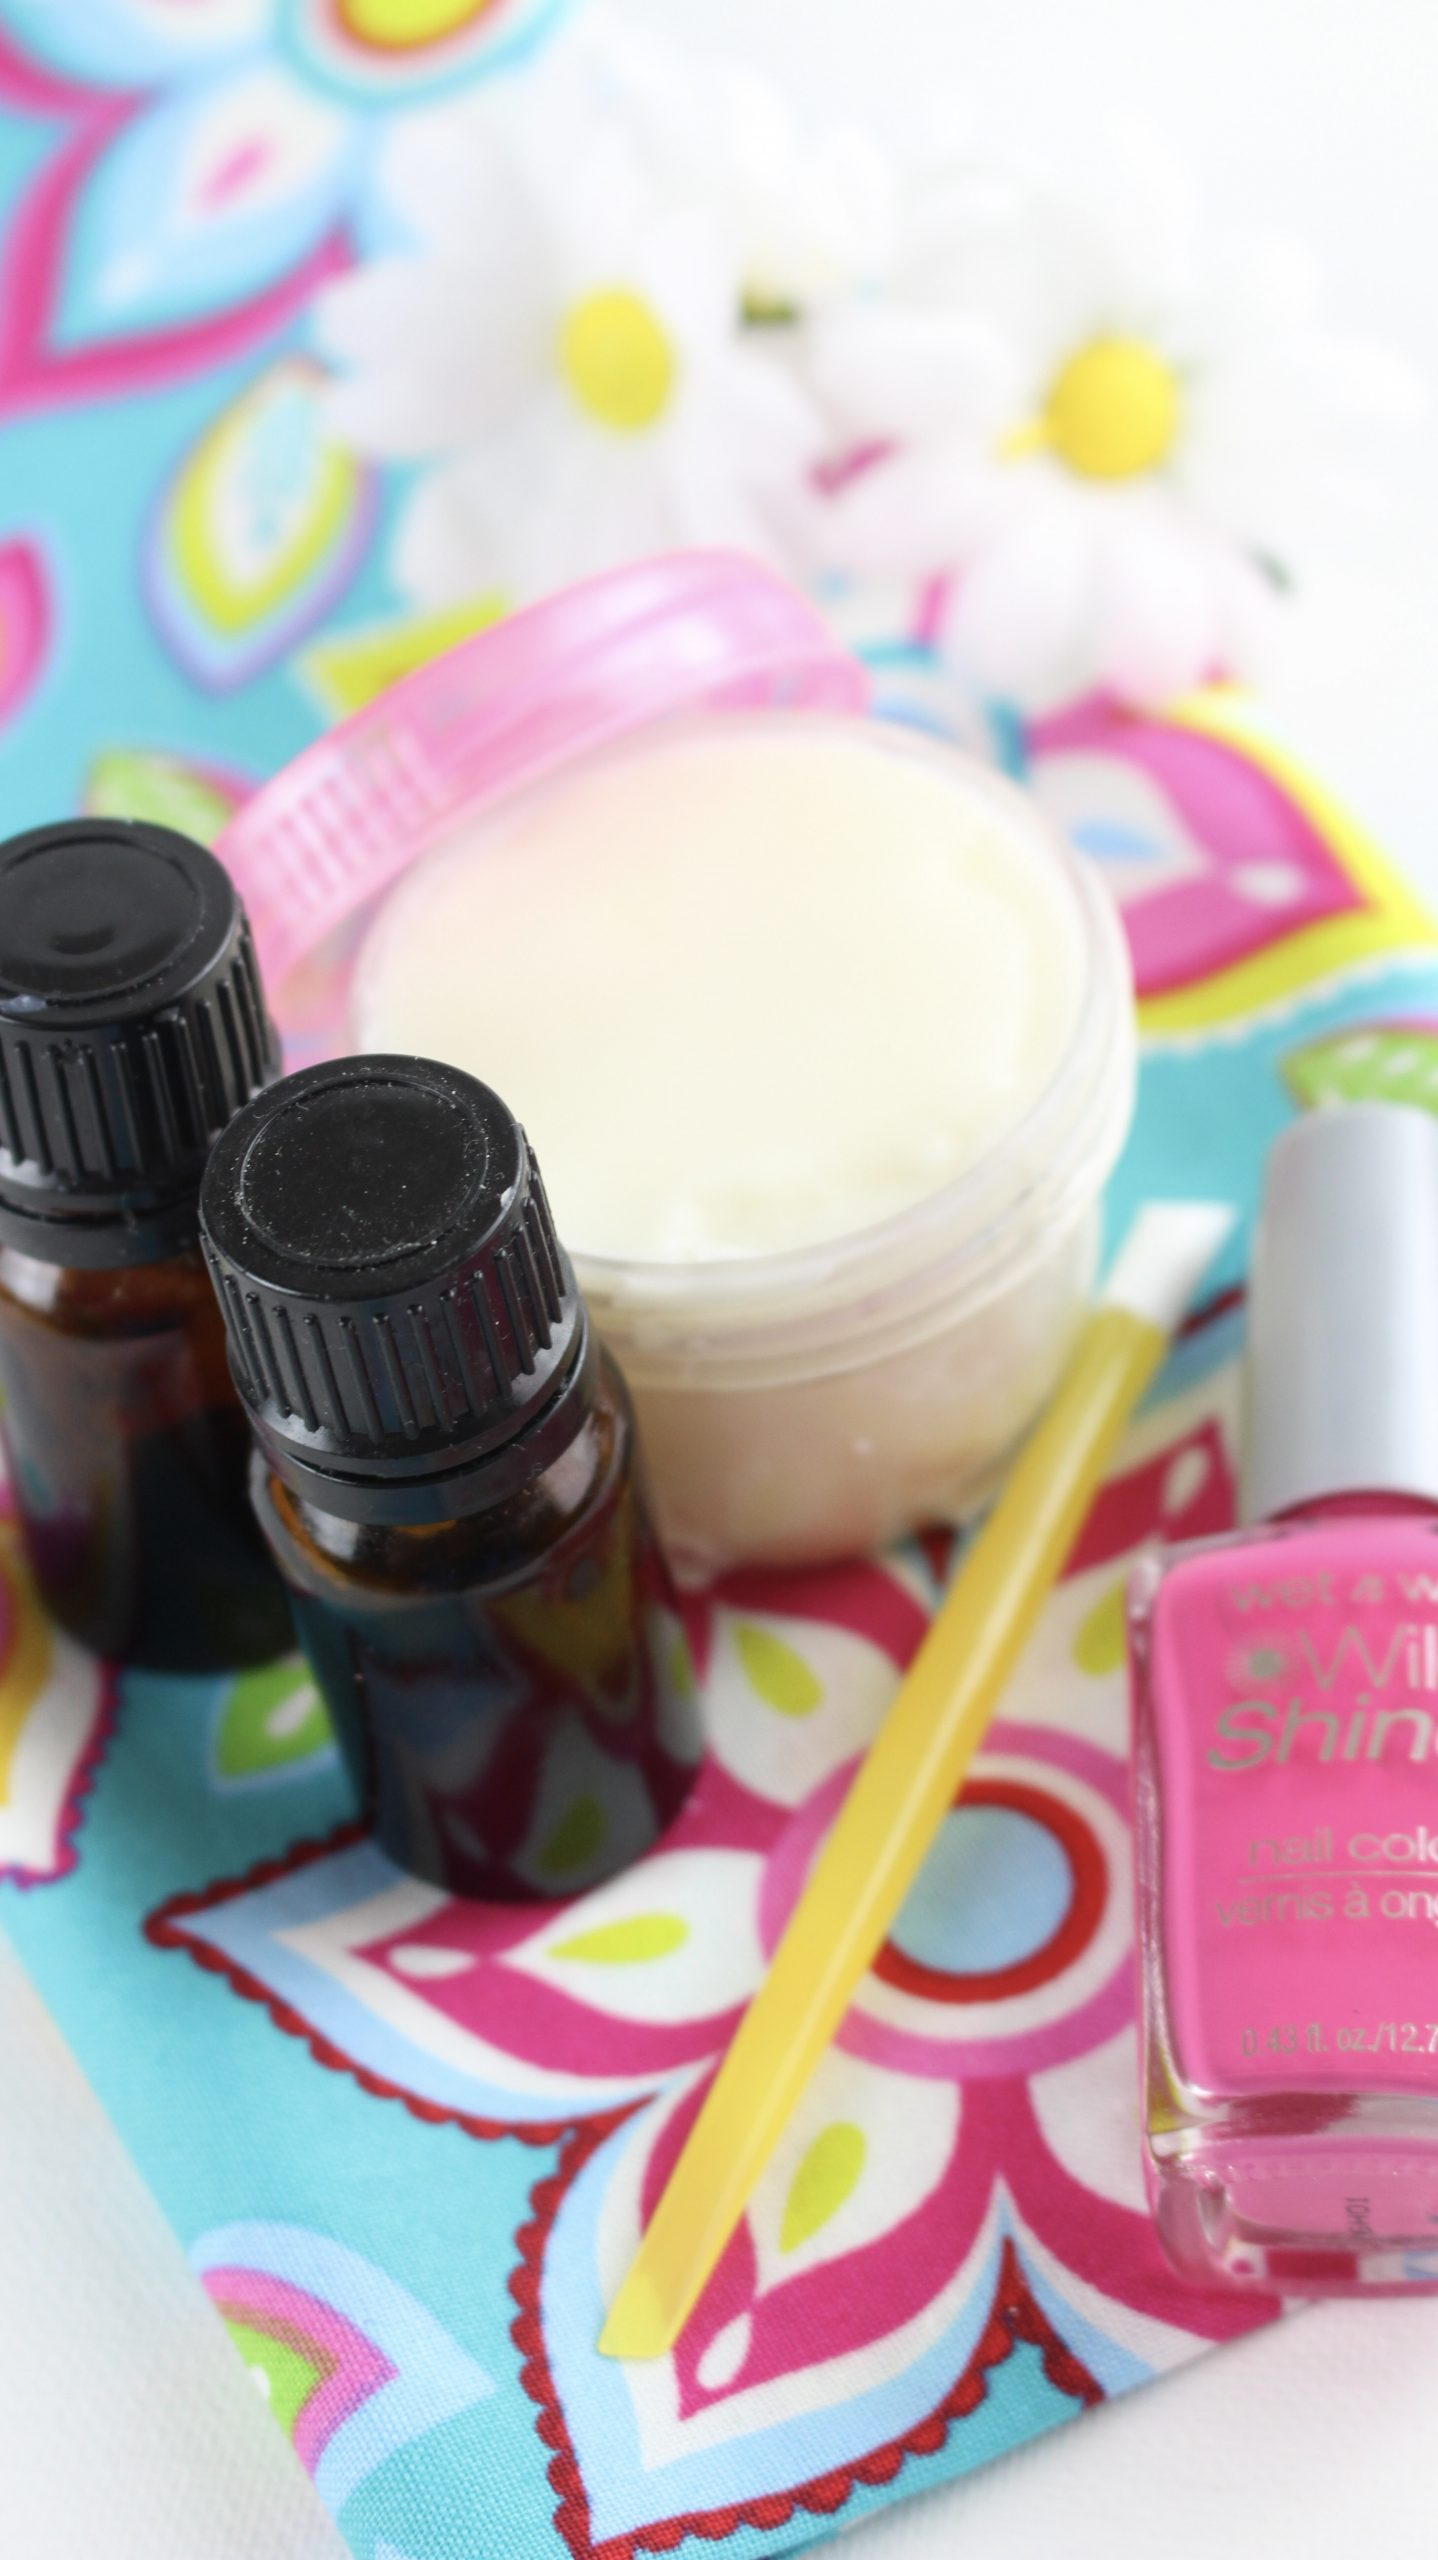 DIY Cuticle Cream with Essential Oils and Nail Tools